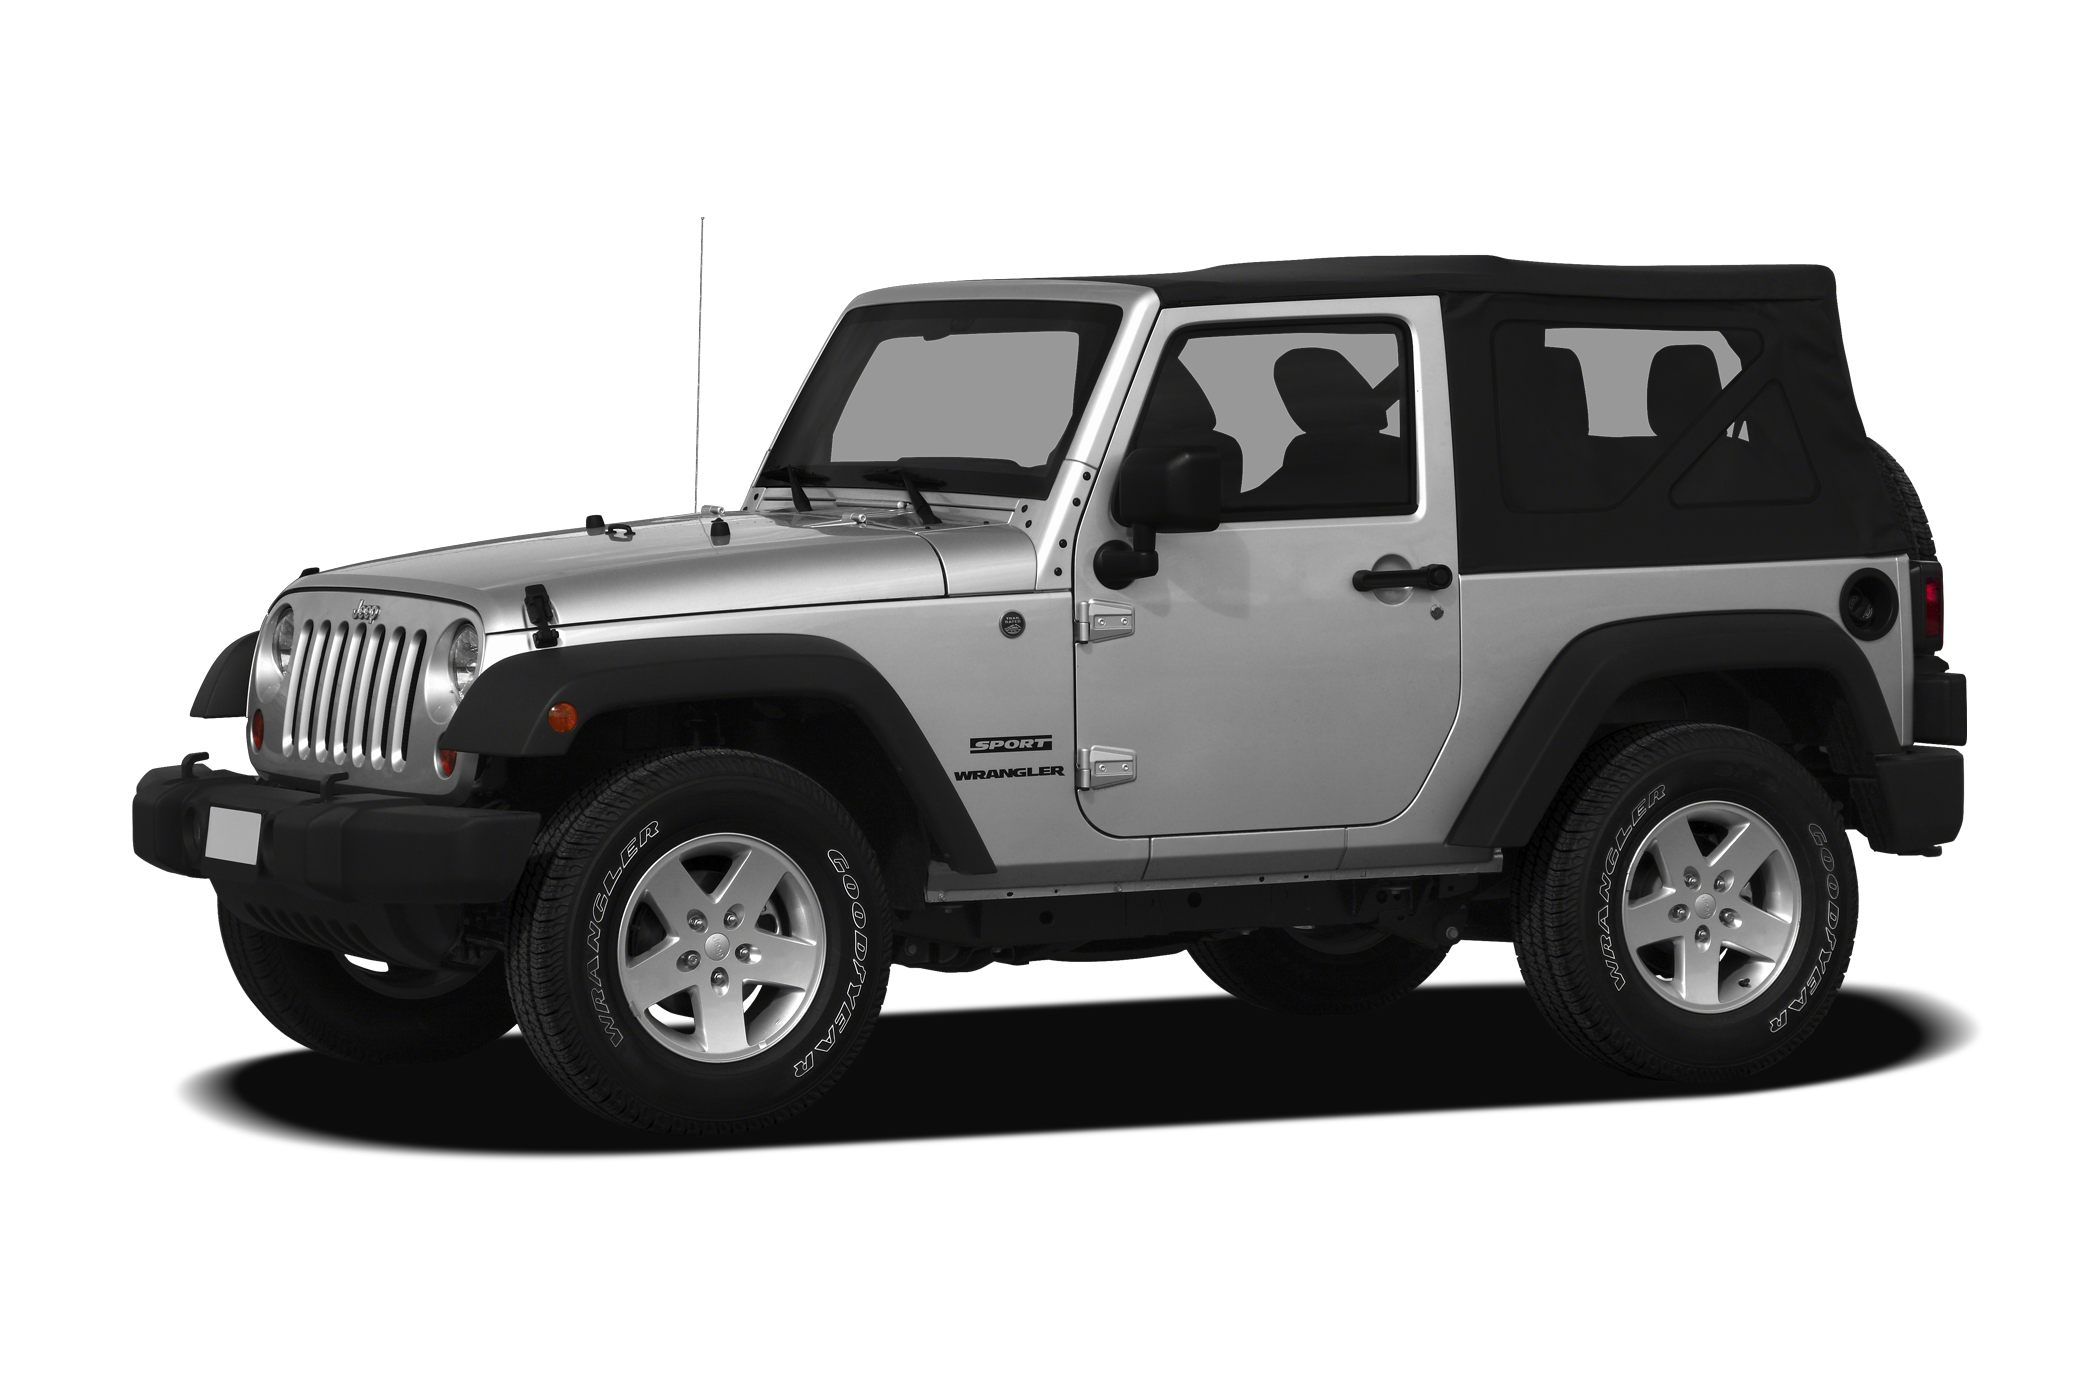 2011 Jeep Wrangler 70th Anniversary SUV for sale in Bessemer for $31,298 with 13,500 miles.